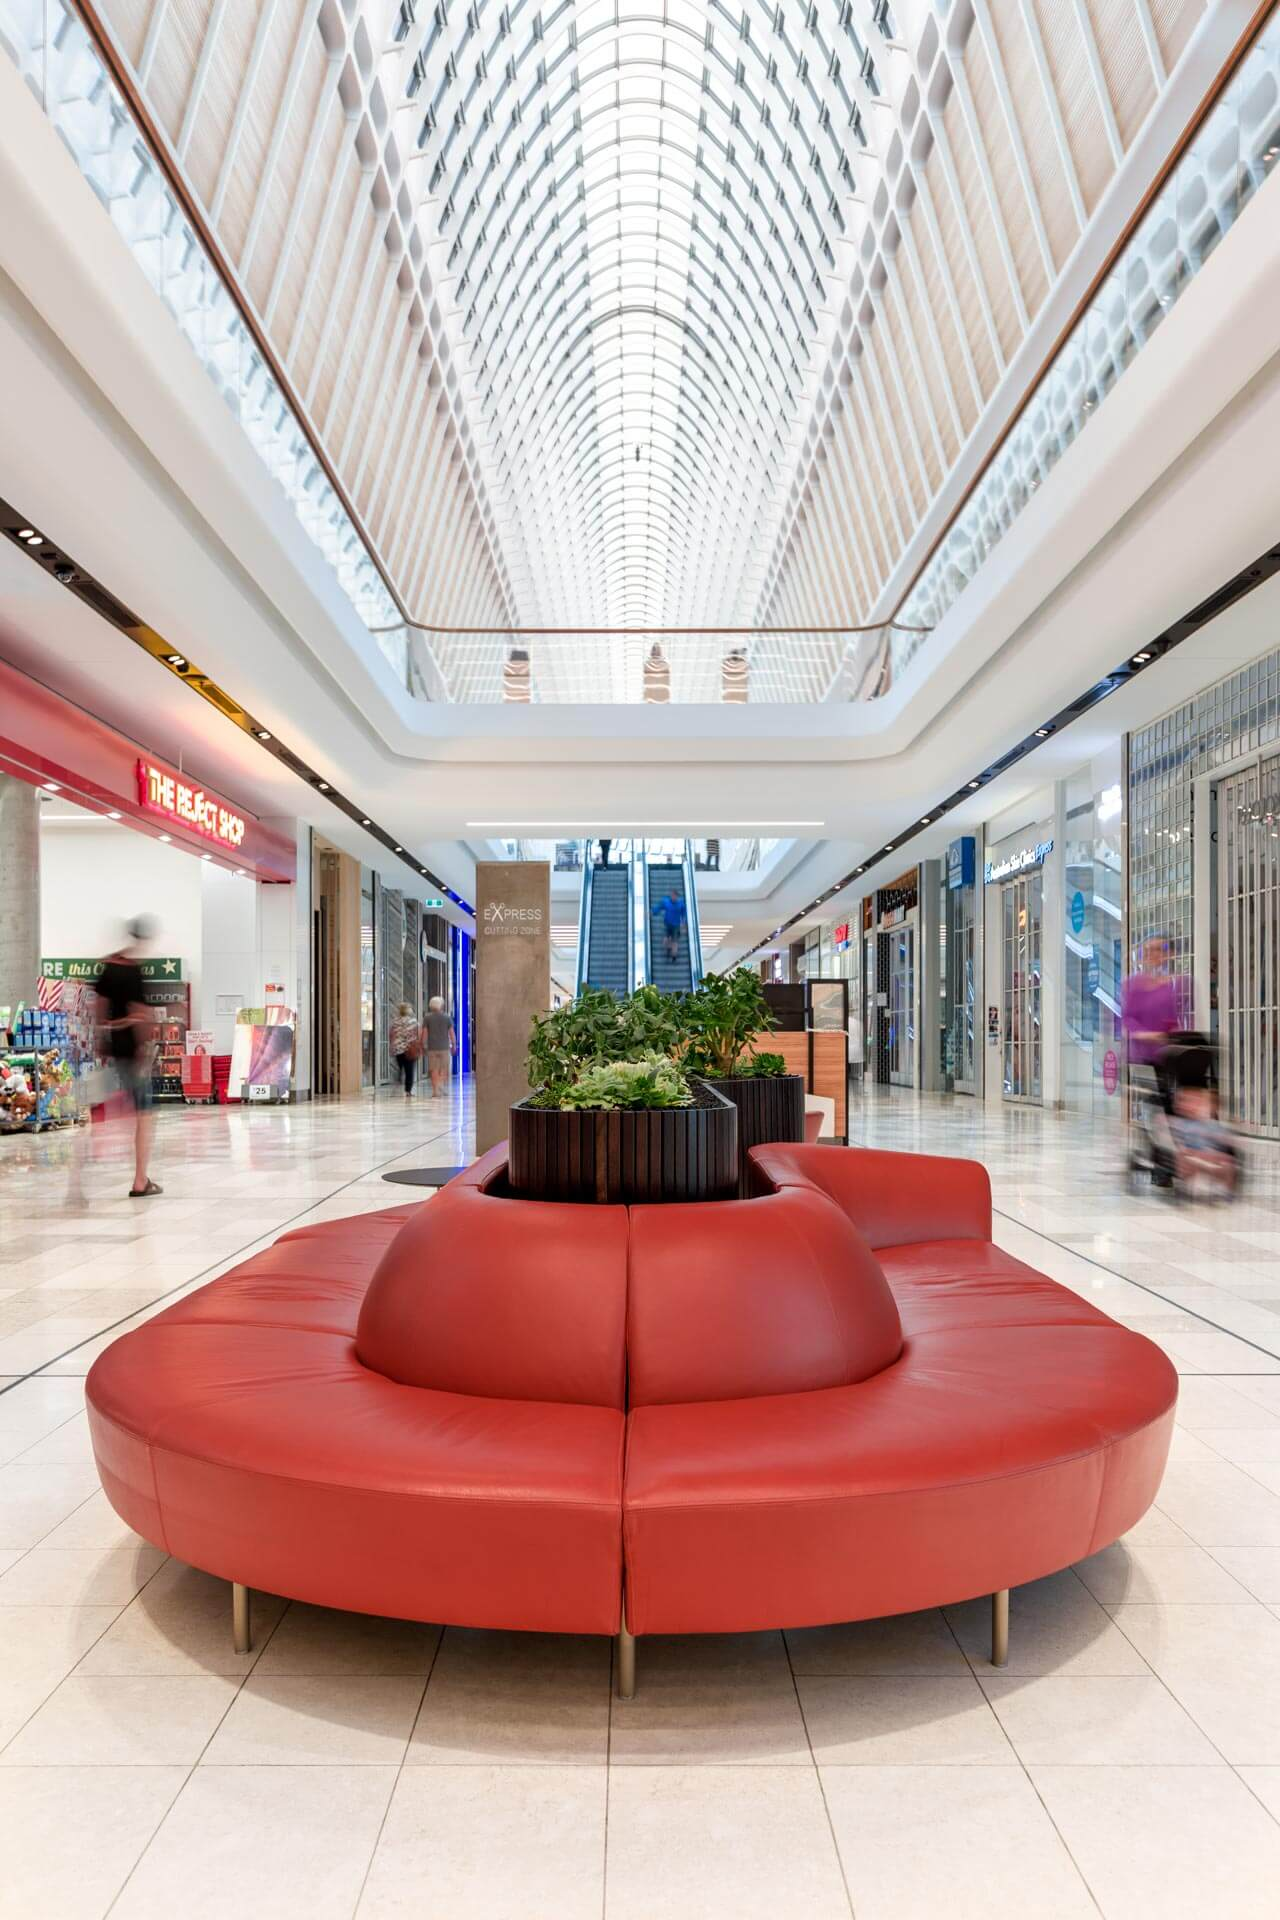 custom design red furniture seating unit in eastland shopping centre walk ways